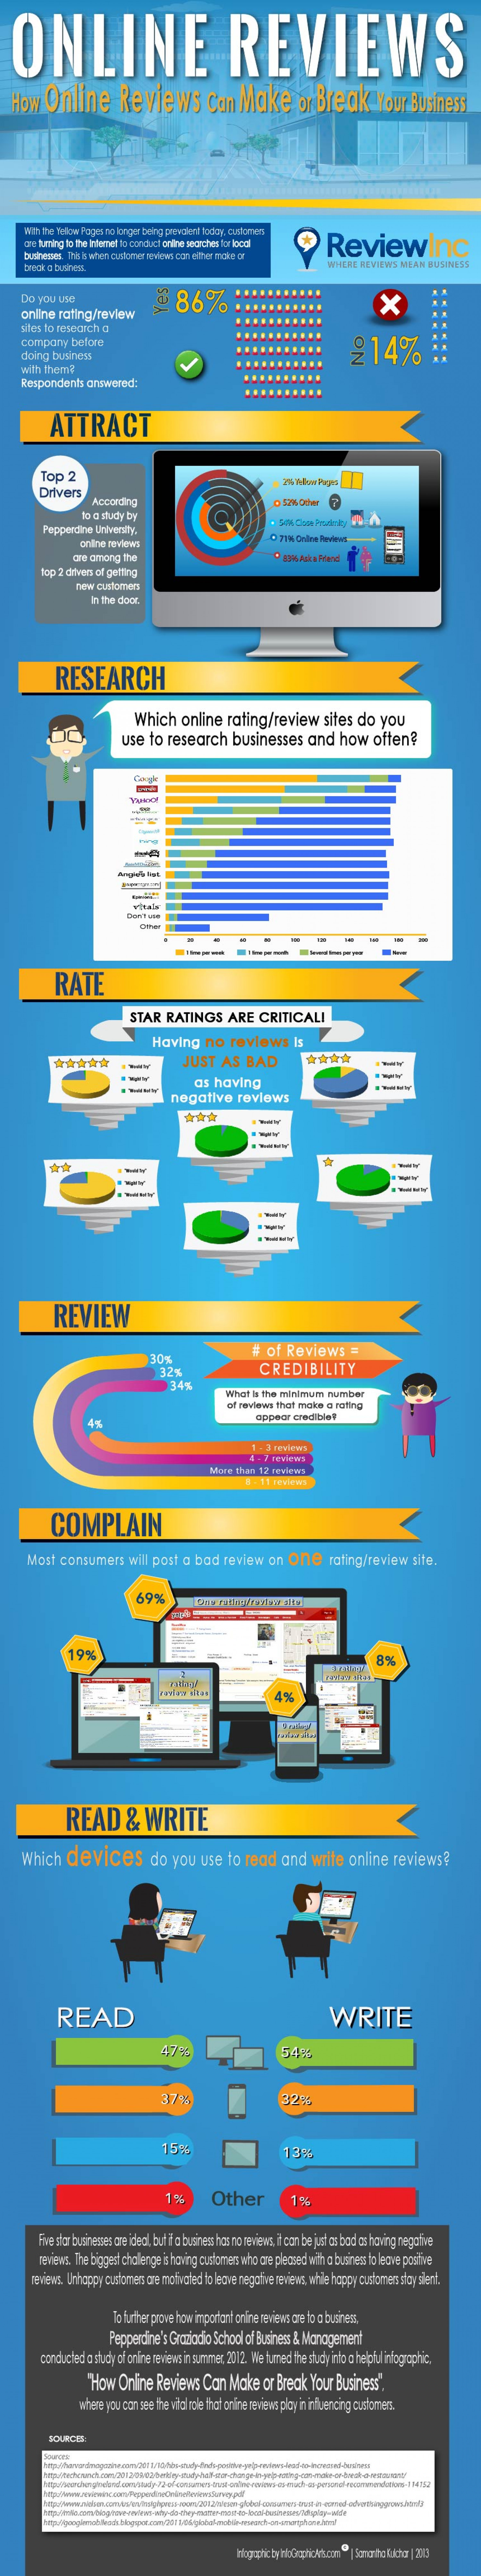 How Online Reviews Can Make or Break Your Business Infographic